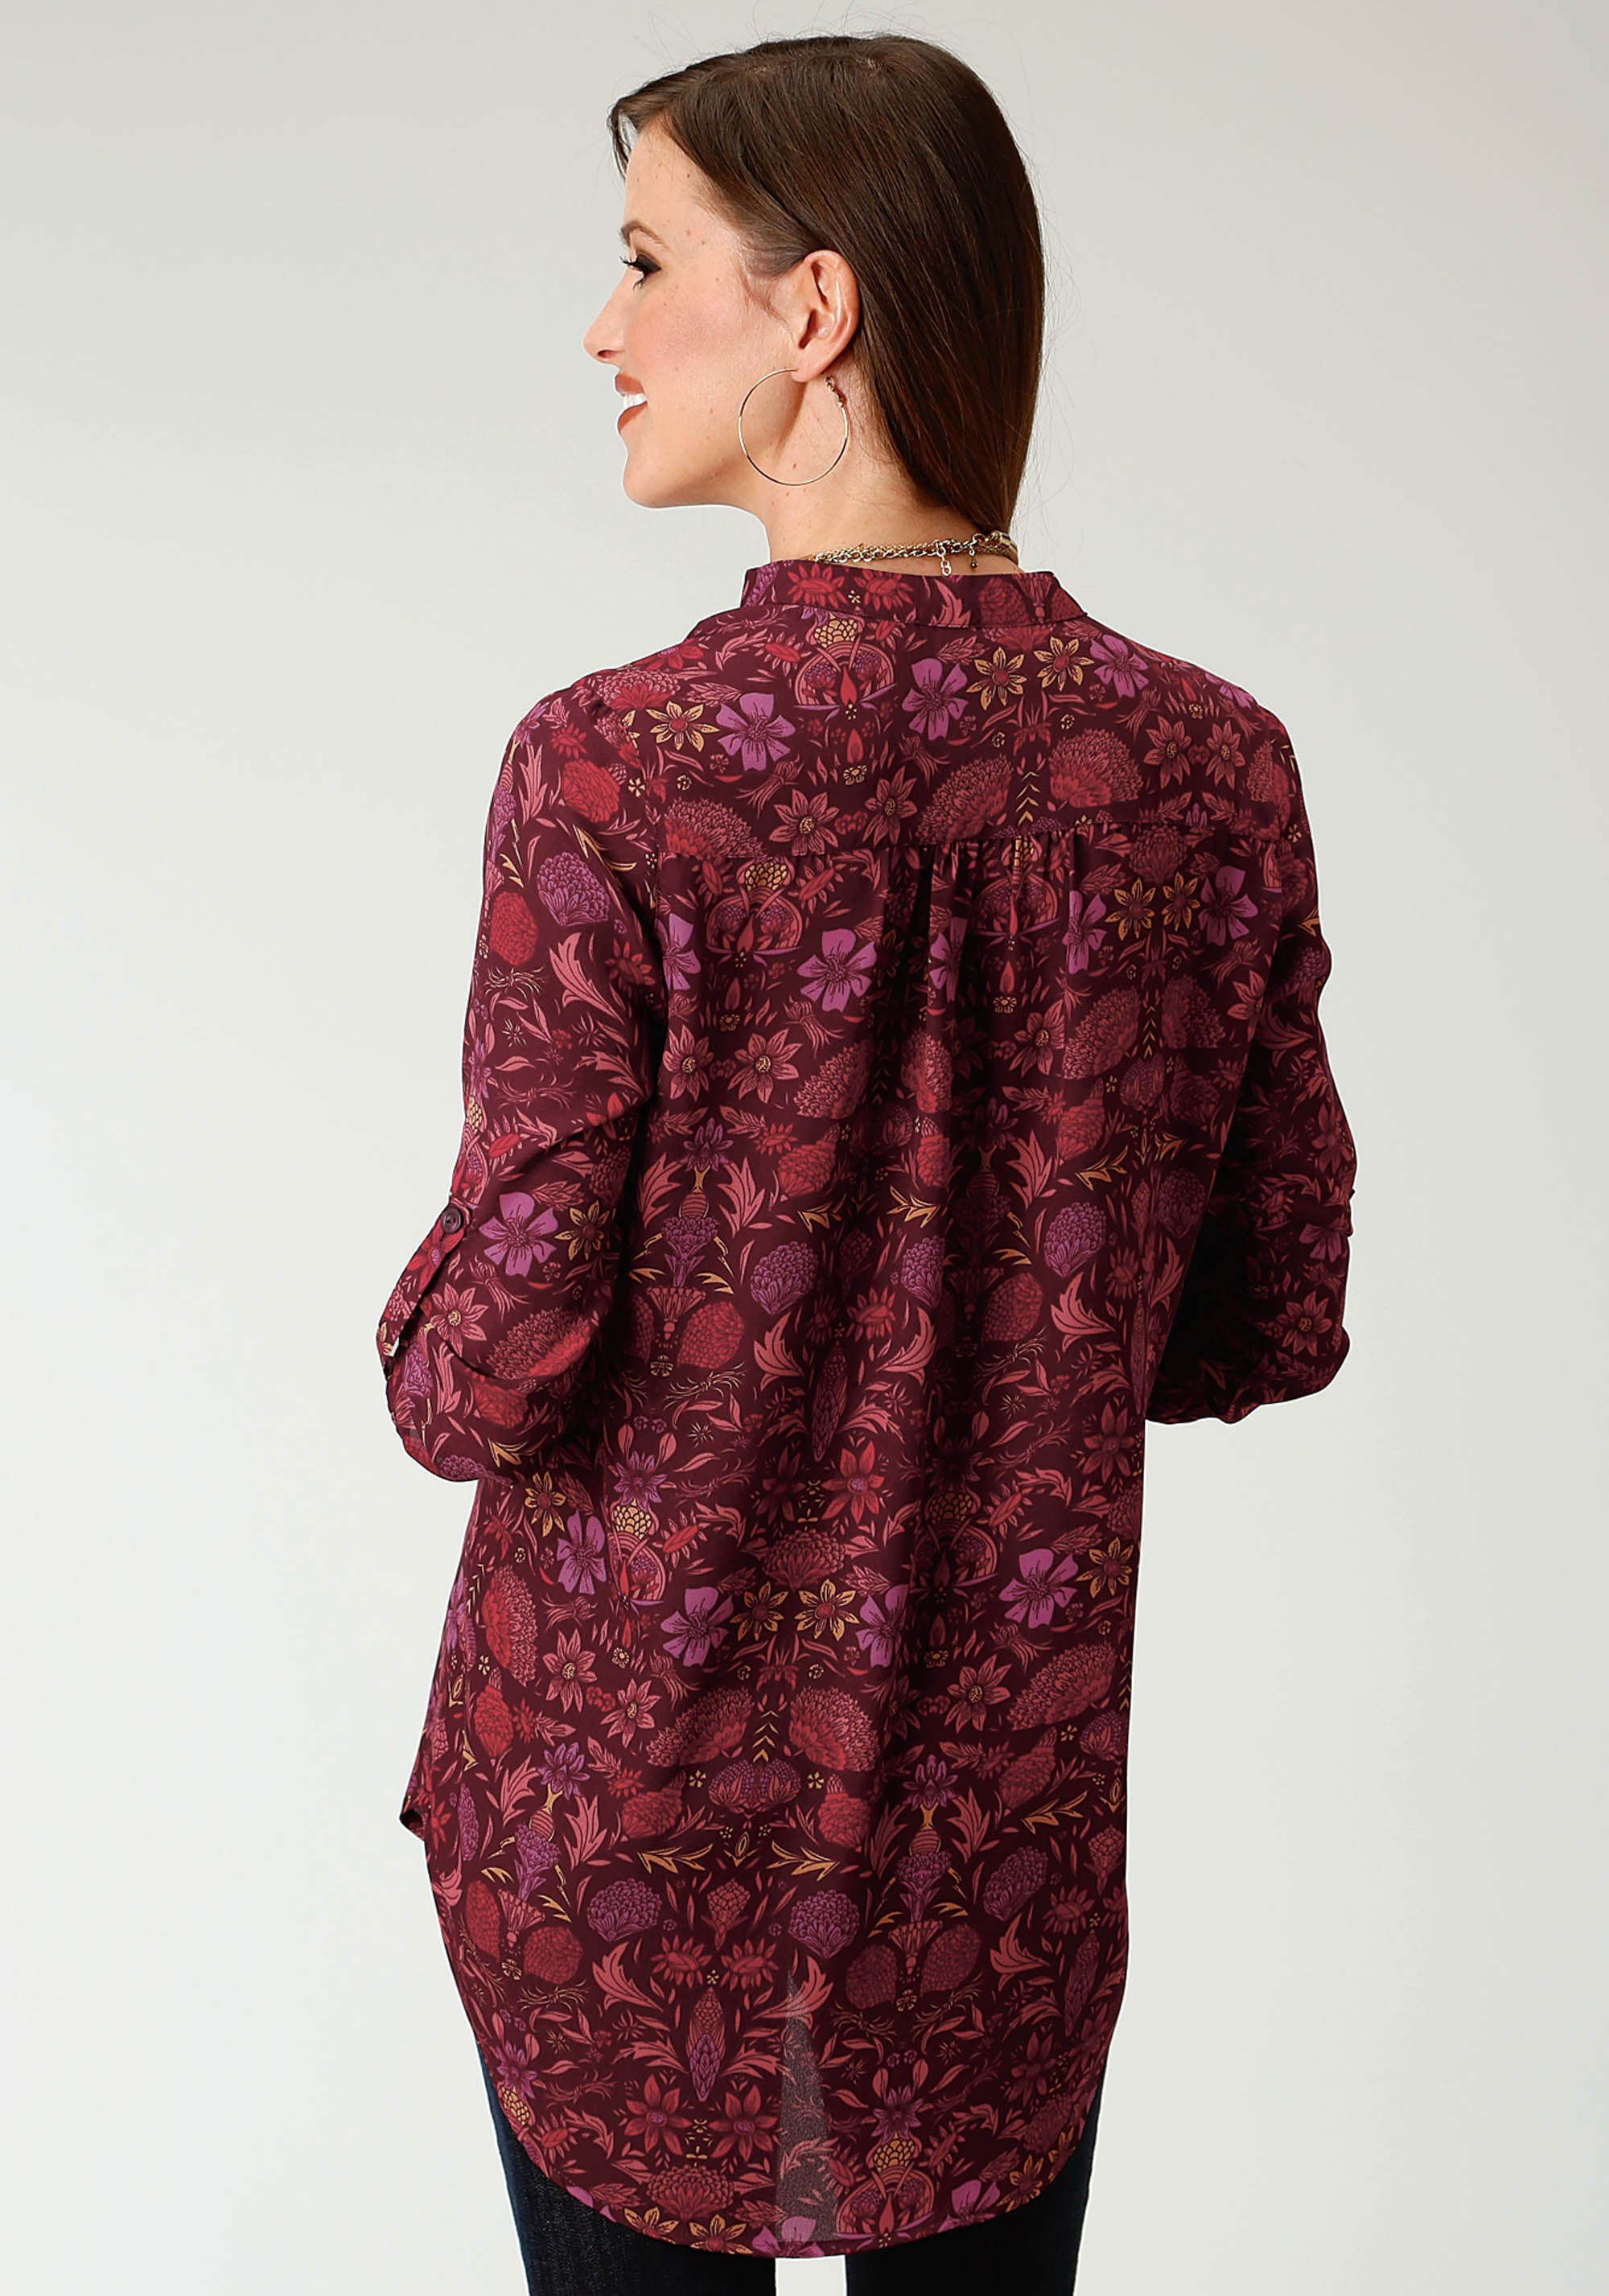 ROPER WOMENS WINE 1841 FLORAL PRT POLY CREPE TUNIC STUDIO WEST- AUTUMN VINEYARD LONG SLEEVE